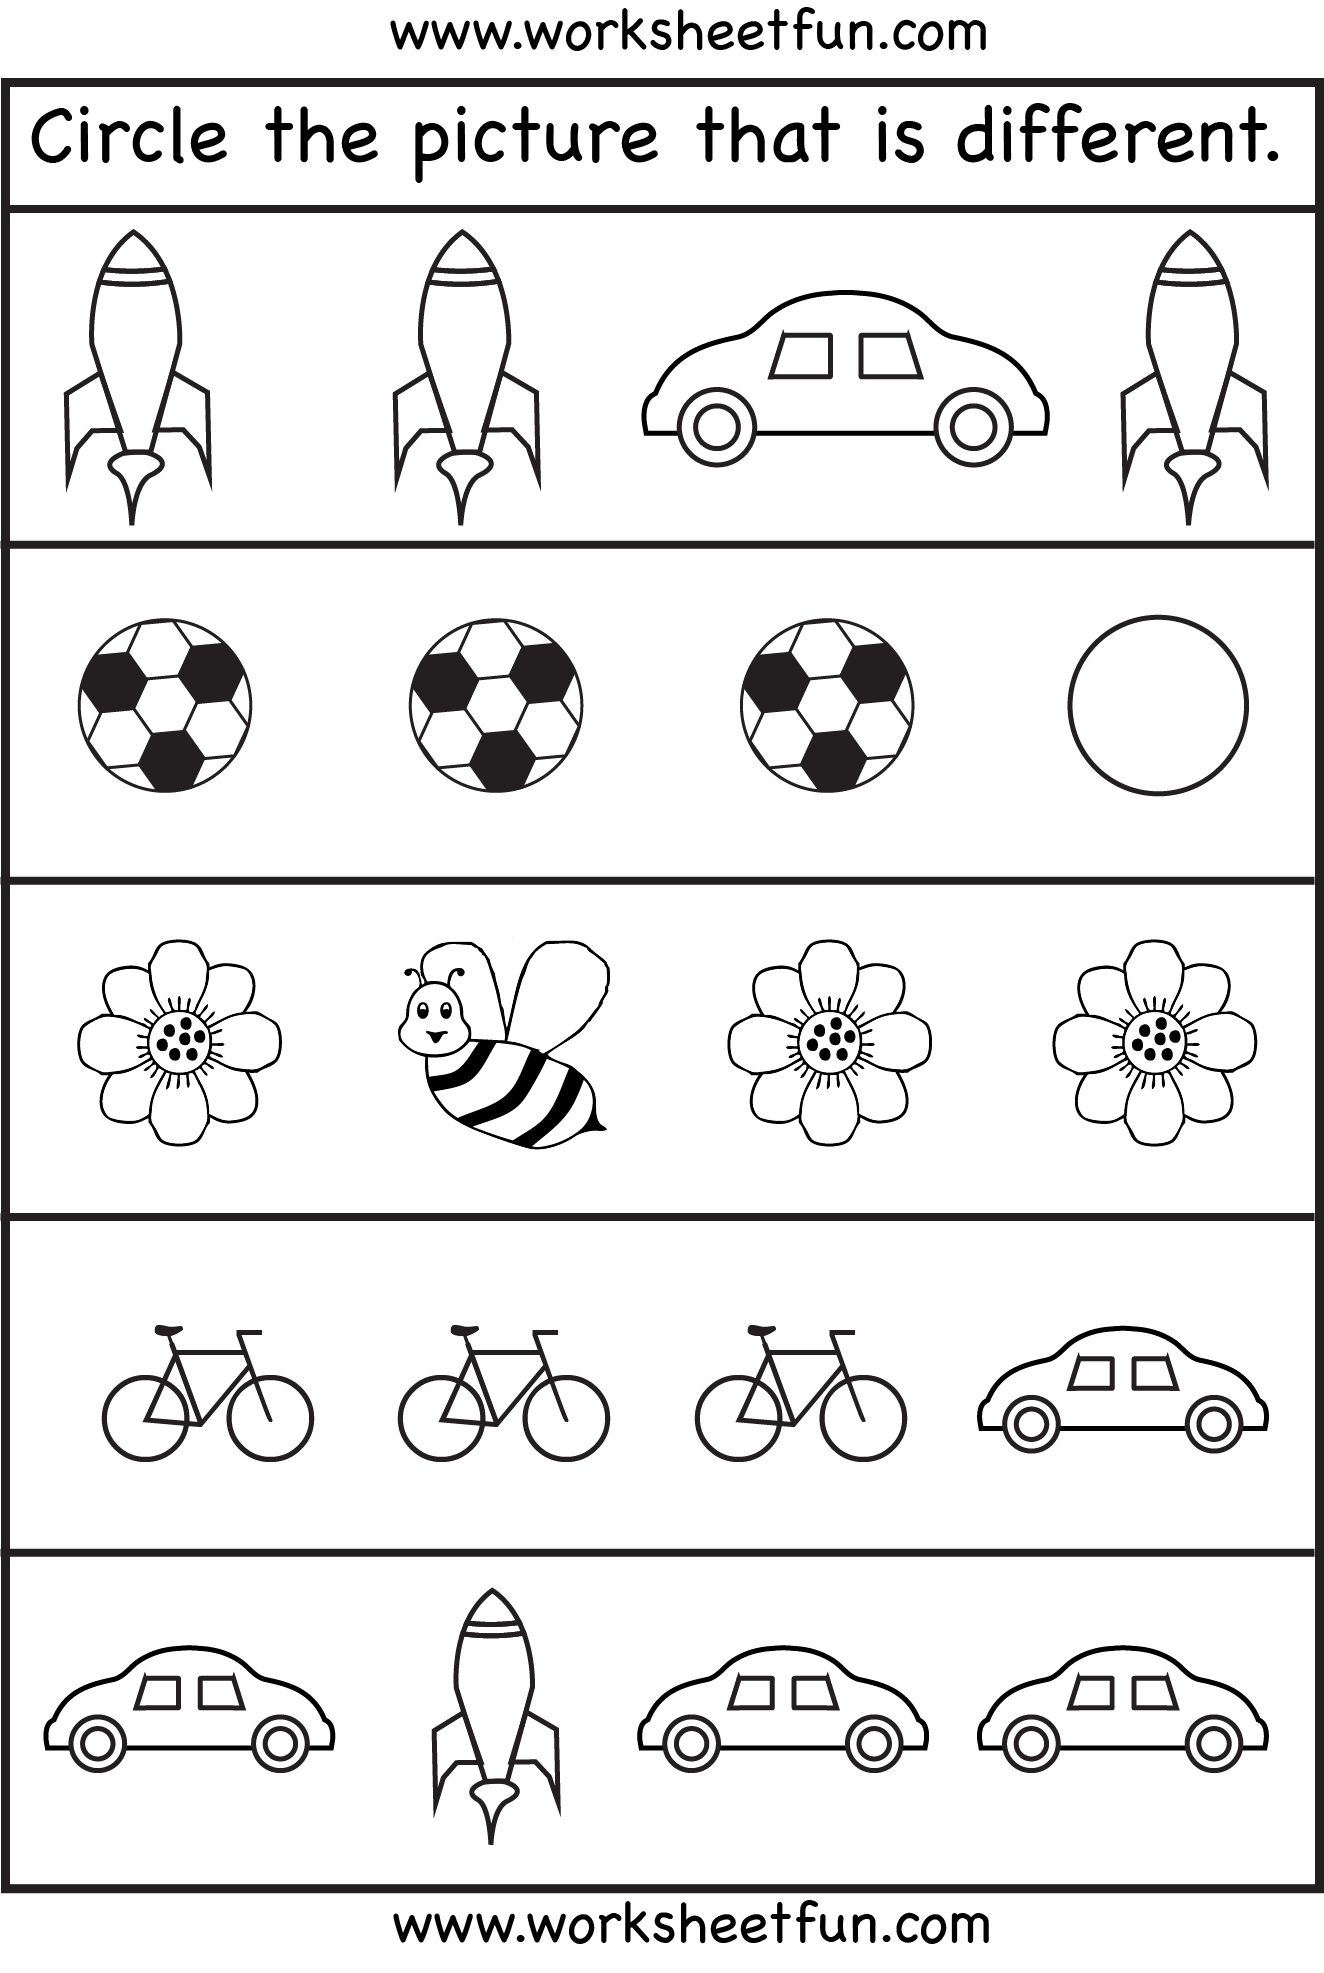 Circle The Picture That Is Different 4 Worksheets Free Printable Worksheets Worksheetfun